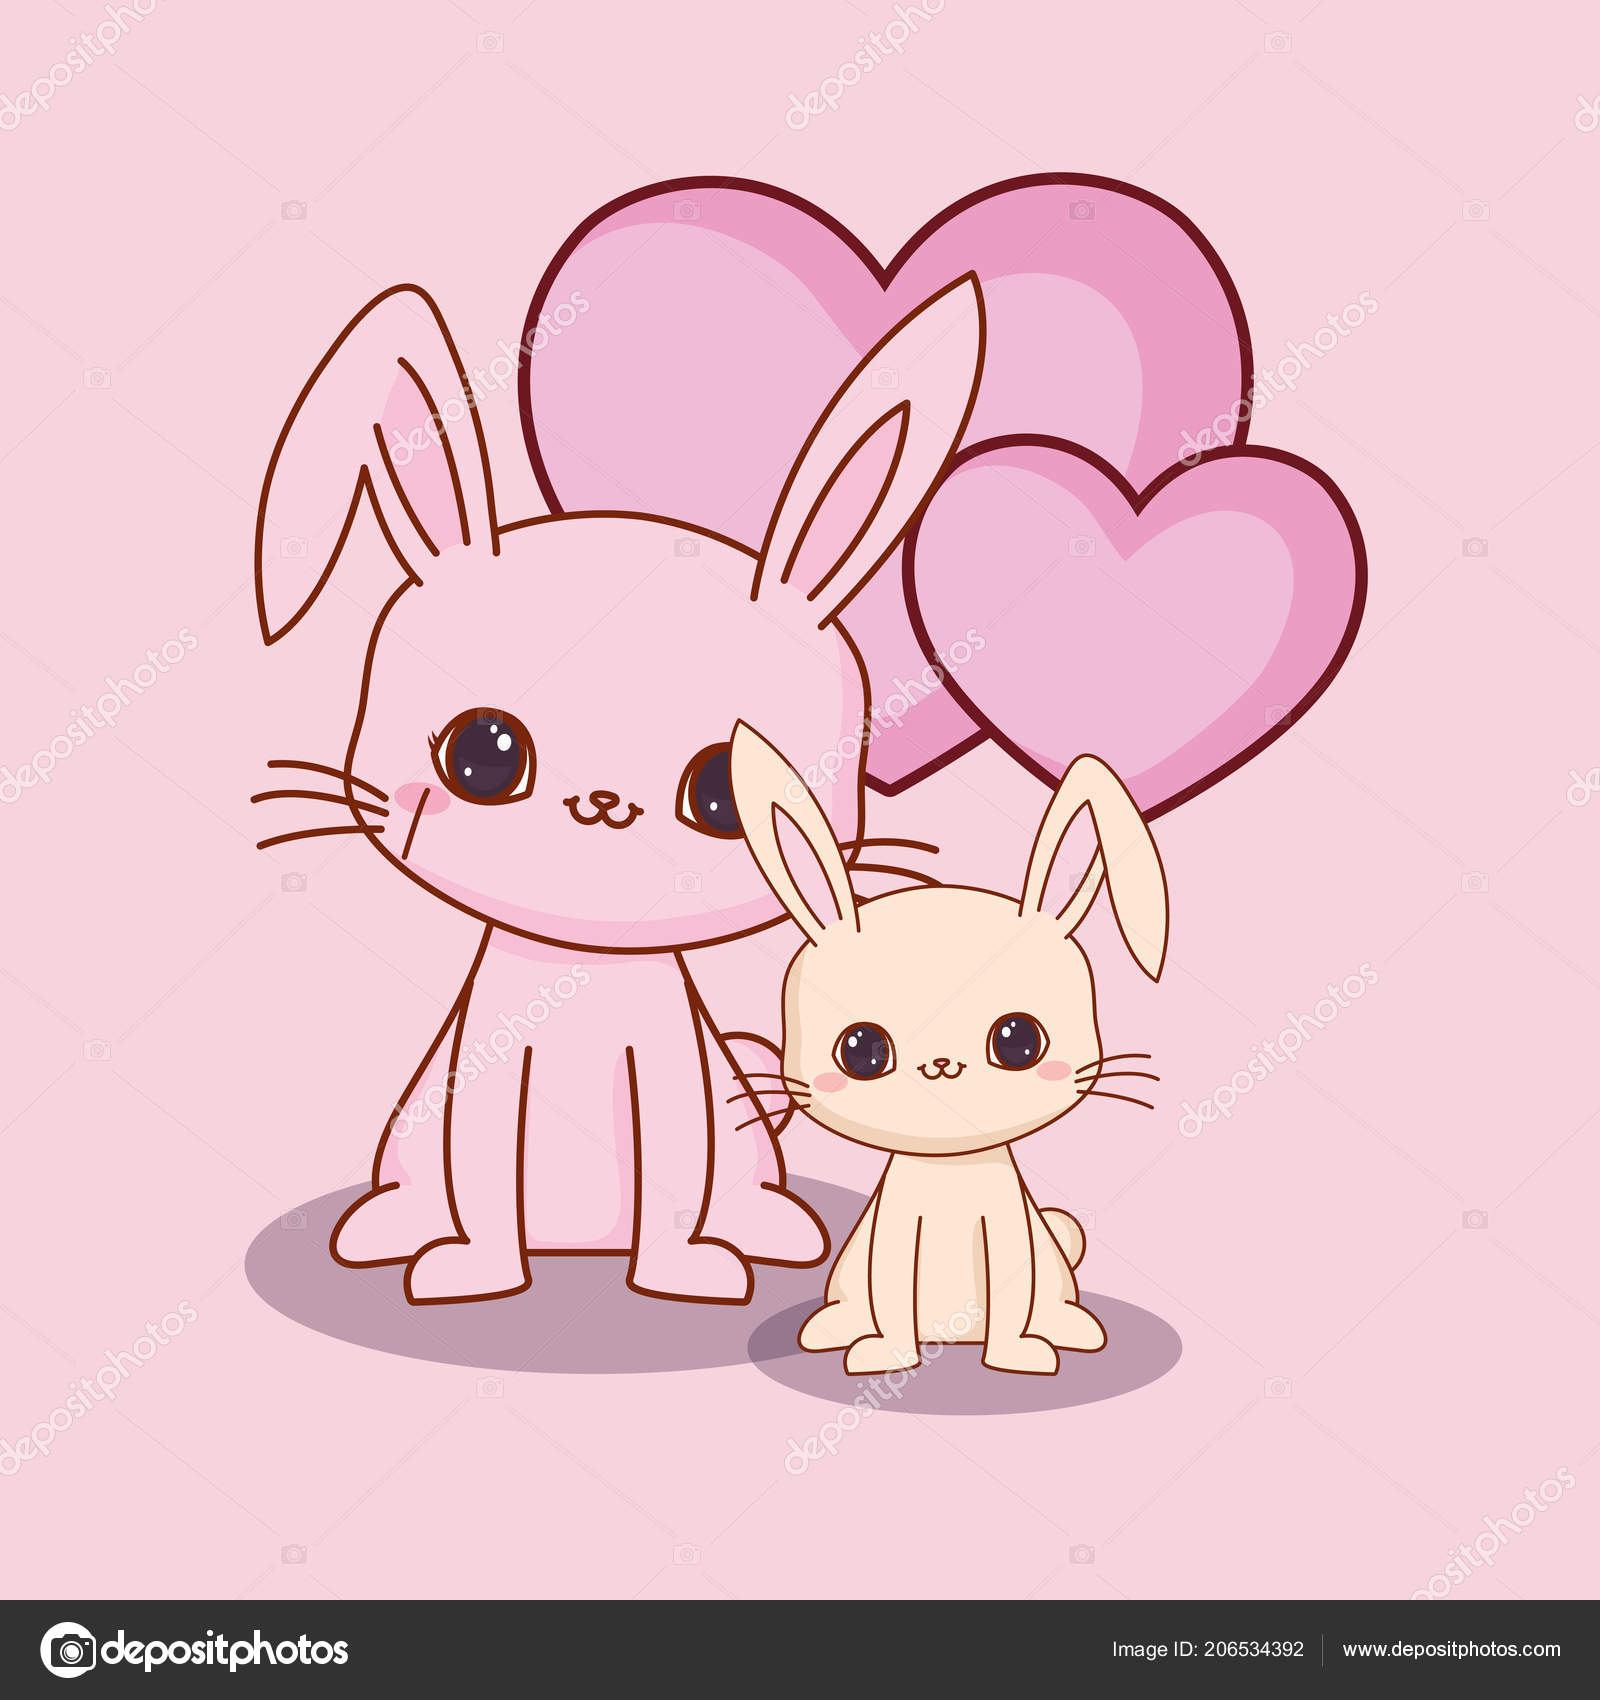 Image of: Etsy Kawaii Animals And Love Stock Vector Depositphotos Kawaii Animals And Love Stock Vector Djv 206534392